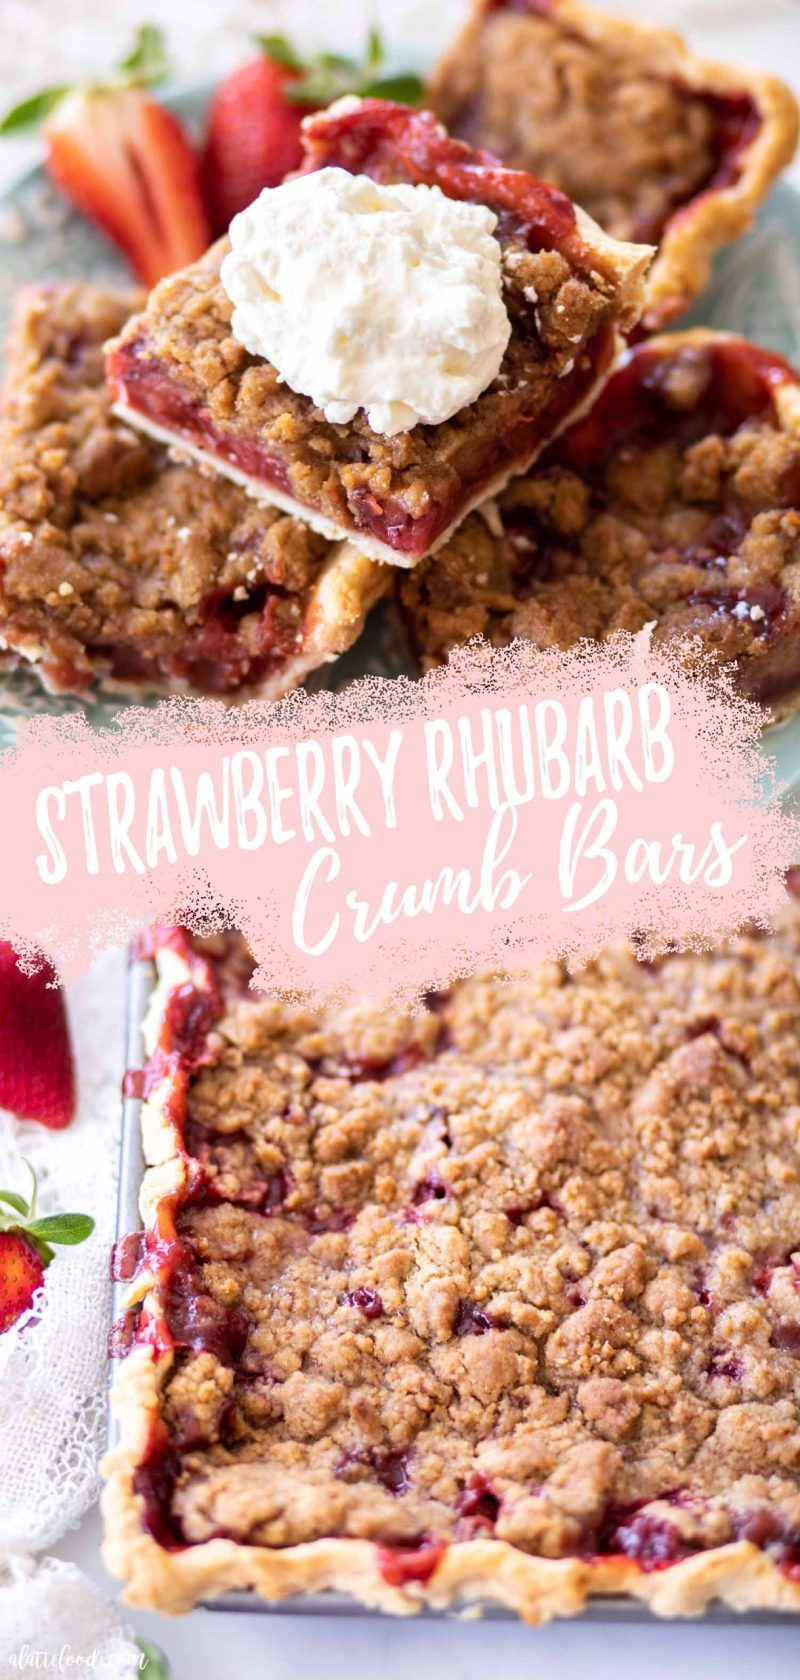 collage strawberry and rhubarb crumb bars (aka pie bars) with text